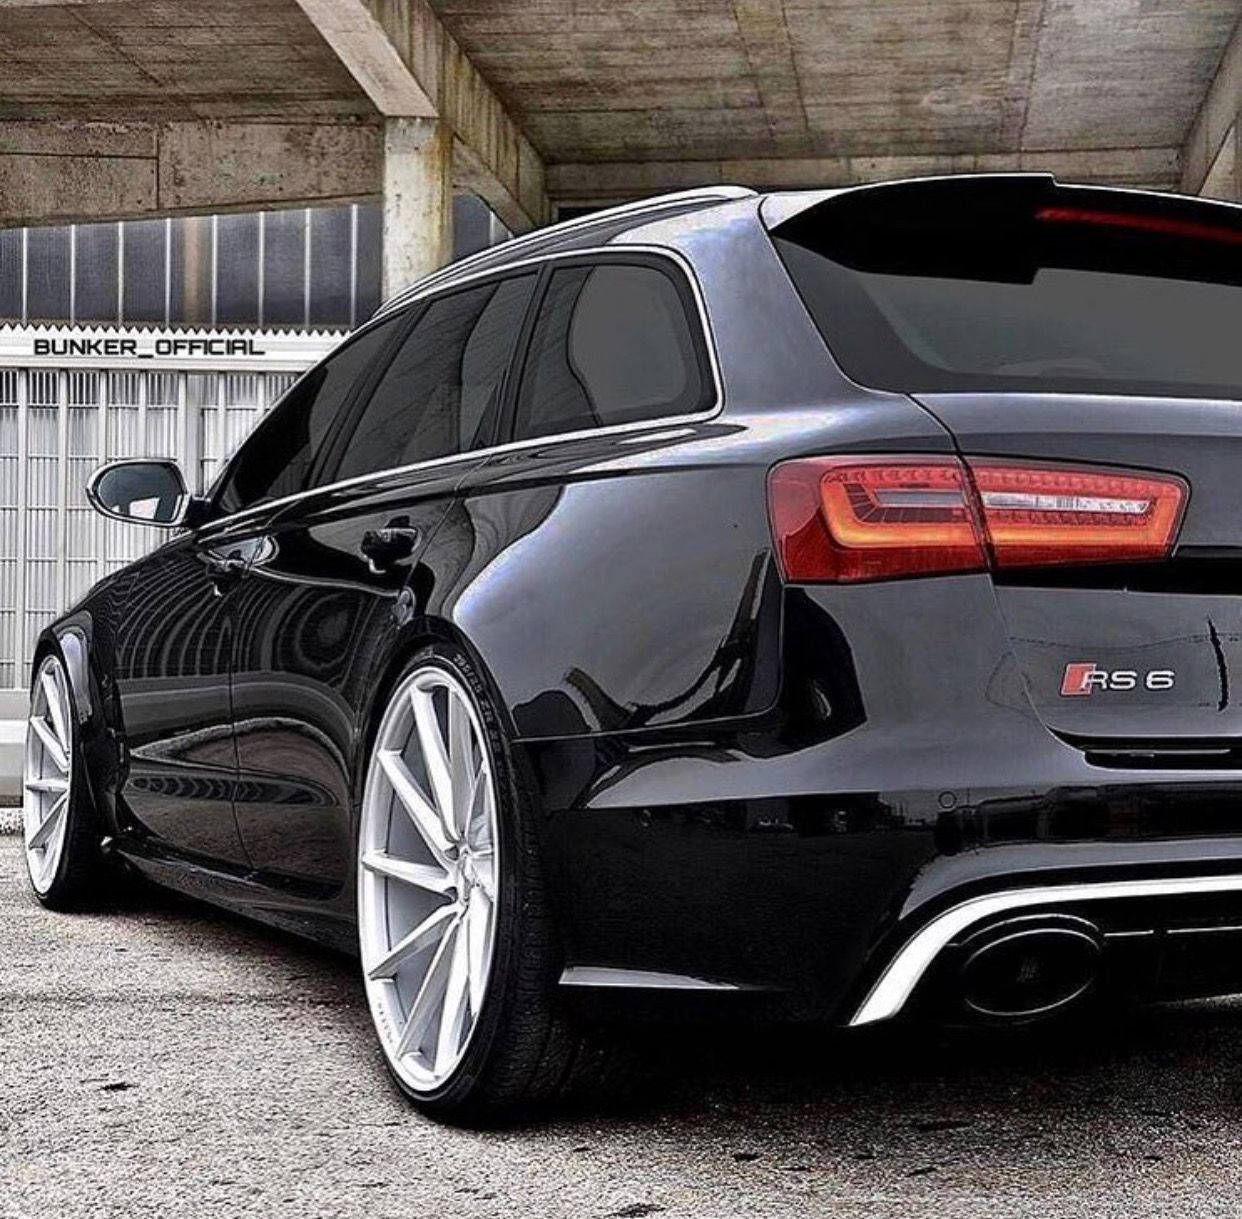 Audi RS6 Wagon.Twin Turbo V8 To Haul Your Shit. Awesome